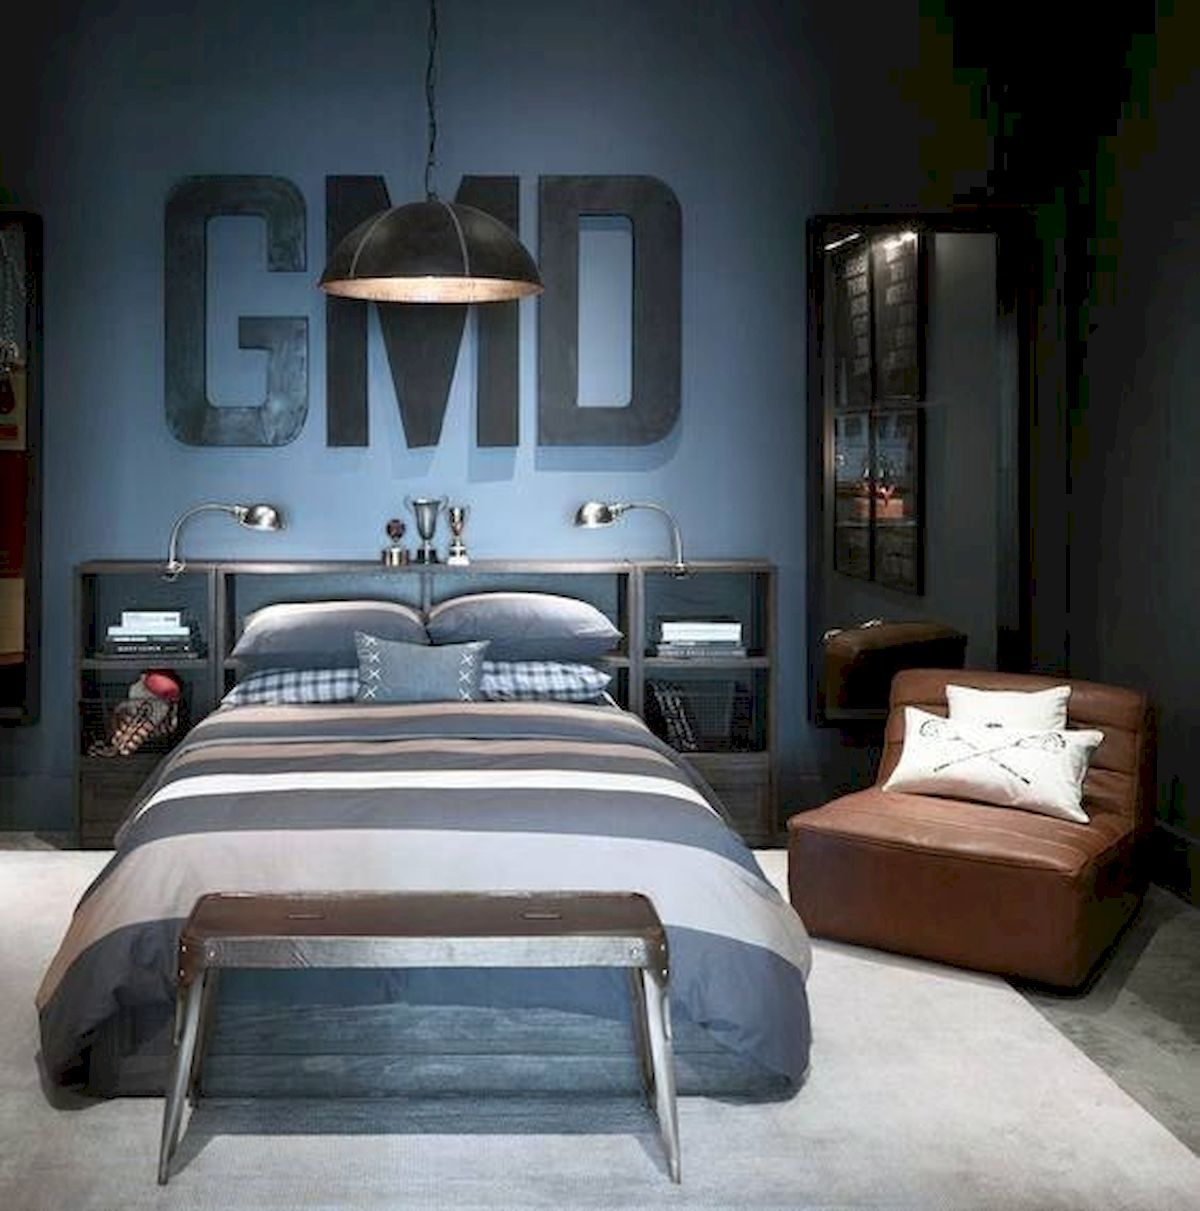 45 Cool Boys Bedroom Ideas to Try at Home (21) - house8055.com